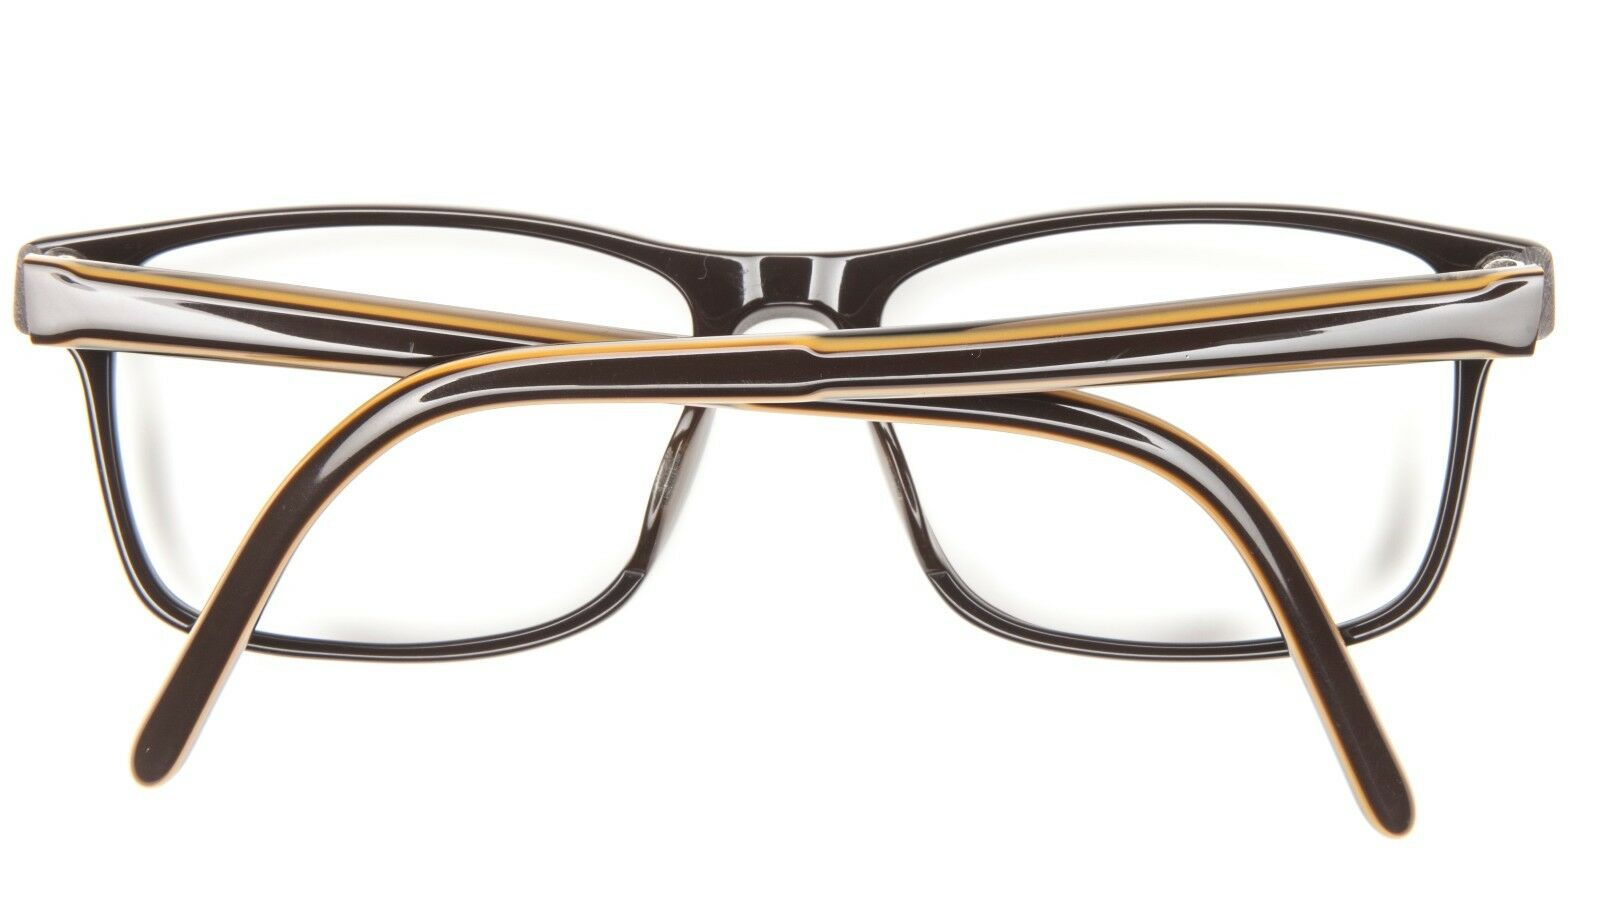 a73b0d97917 PRODESIGN Denmark 1722 C.5032 Brown Eyeglasses Frame 54-16-145 IG B39 Japan  for sale online